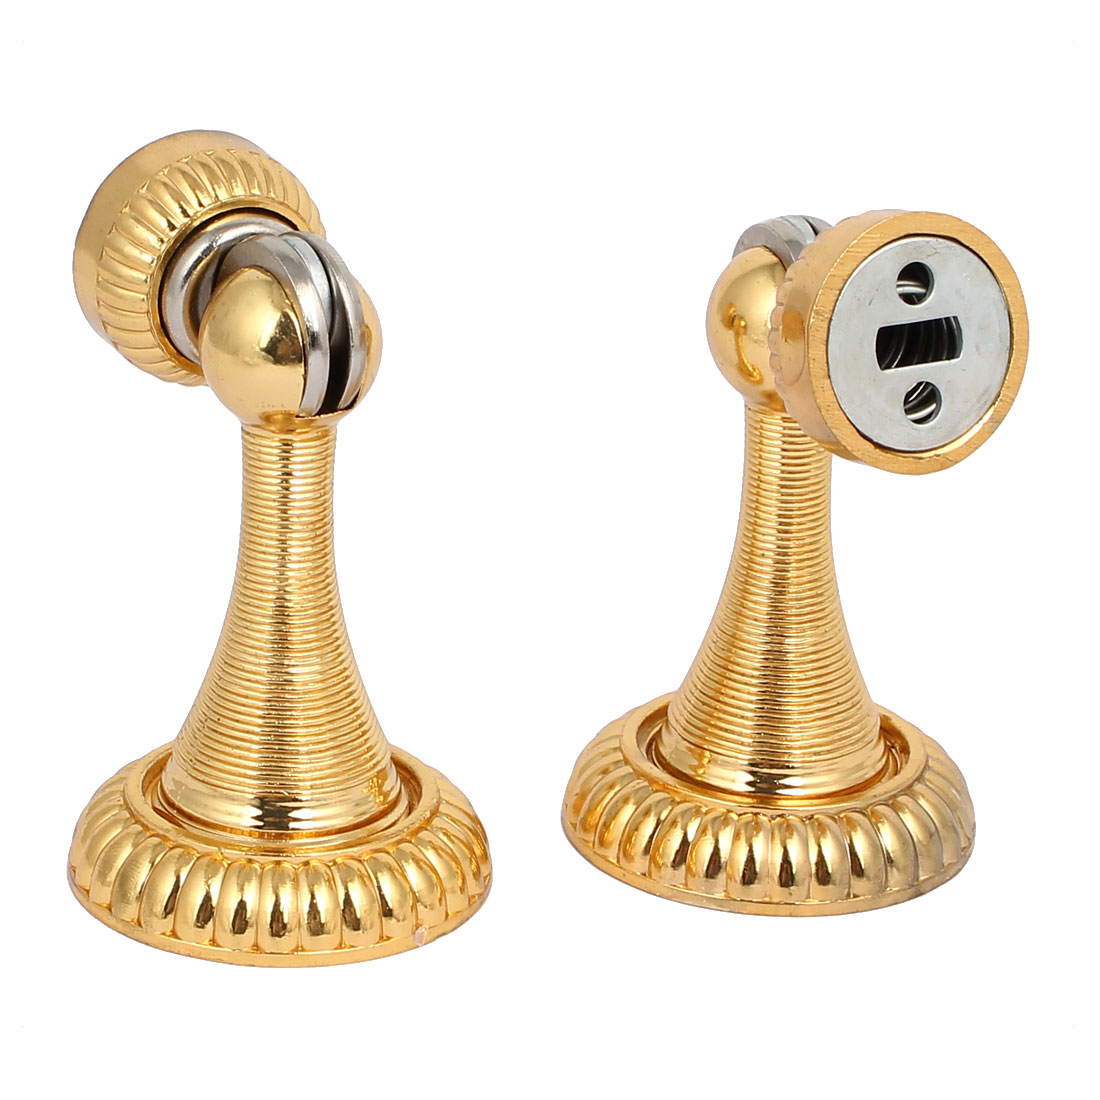 Home Office Metal Door Stopper Holder Magnetic Catches Gold Tone 53mmx85mm 2pcs